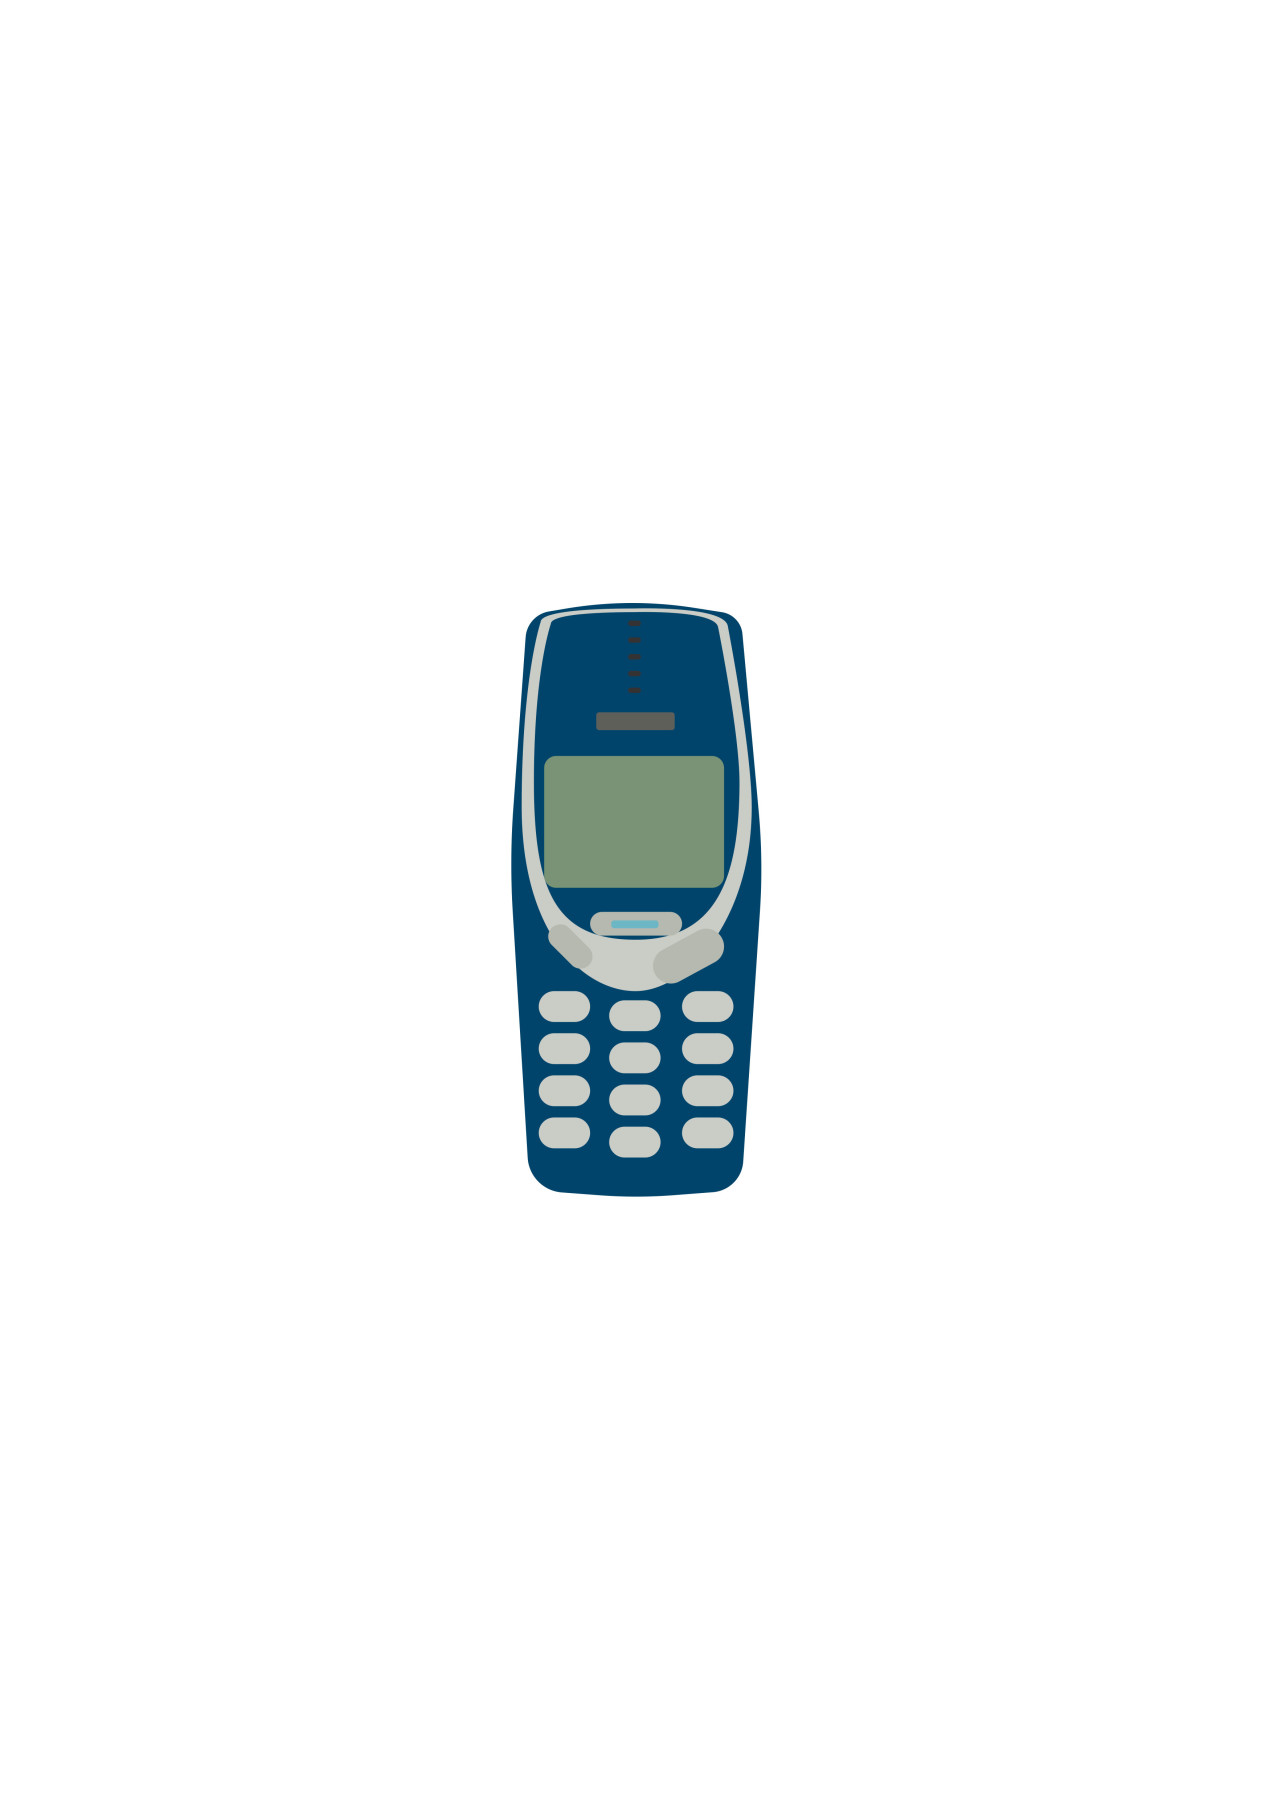 Nokia 3310 is one of the highest selling mobile phones of all times ...